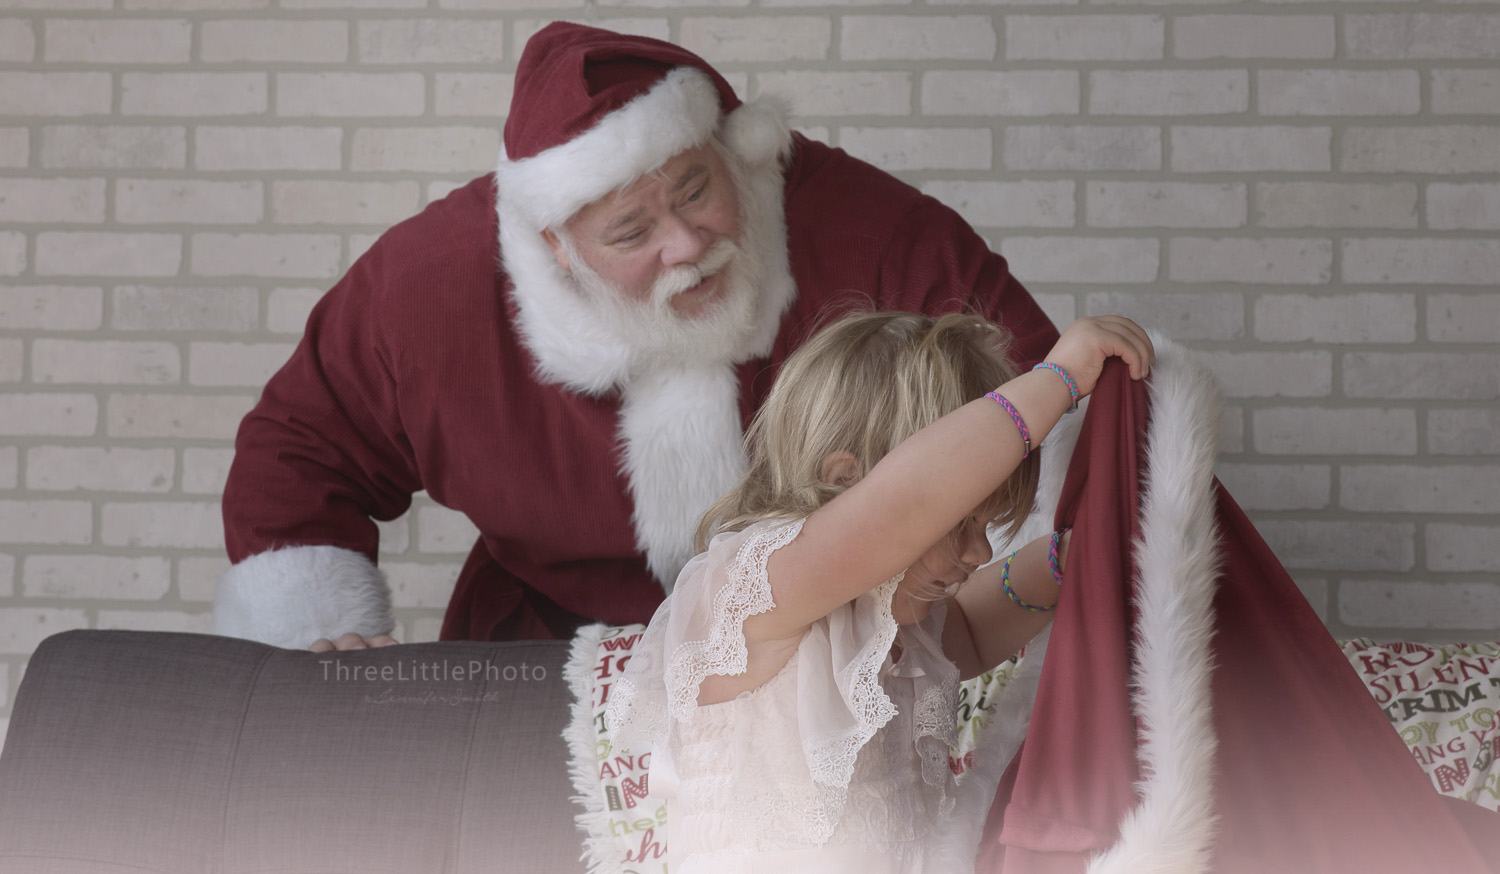 ThreeLittlePhoto_SantaAd_2018_0015.jpg